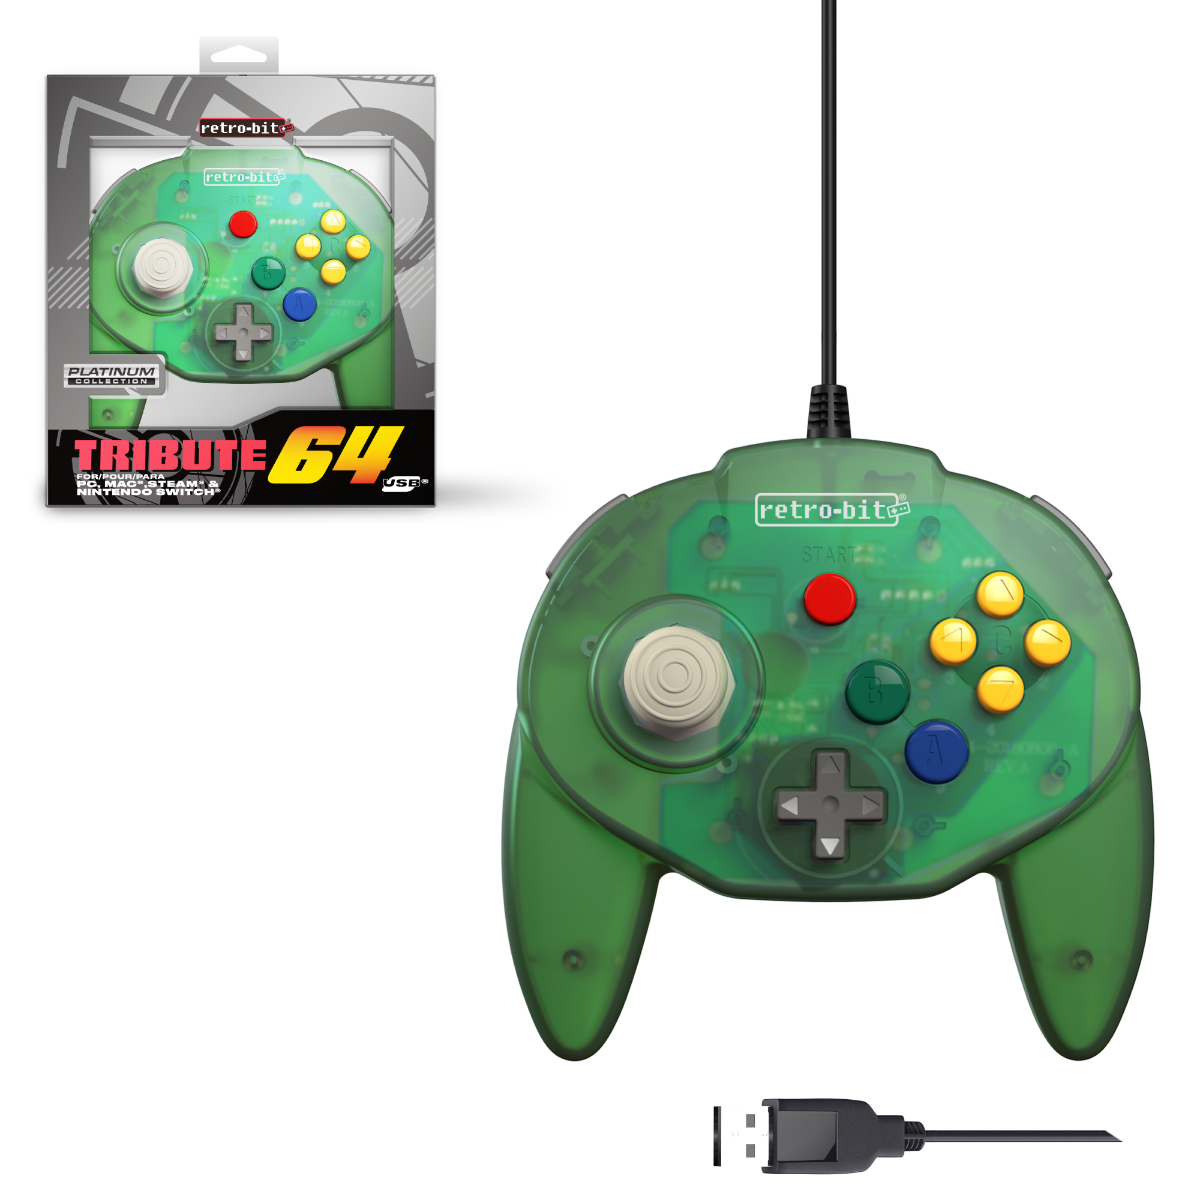 Tribute64 - Forest Green USB